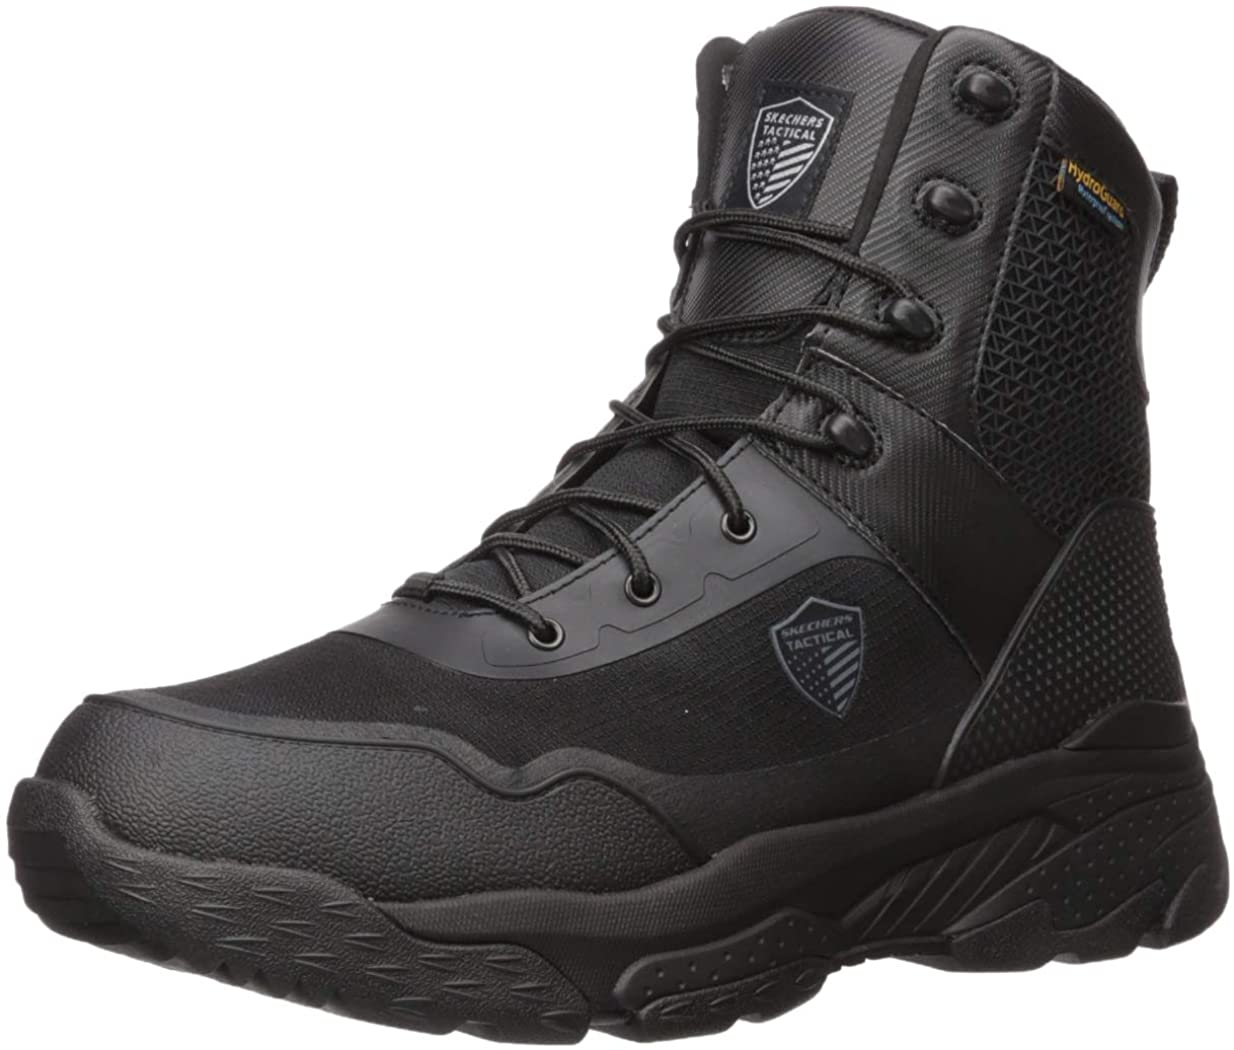 Skechers Work Markan 77515 Men's Boot 11.5 D(M) US Black